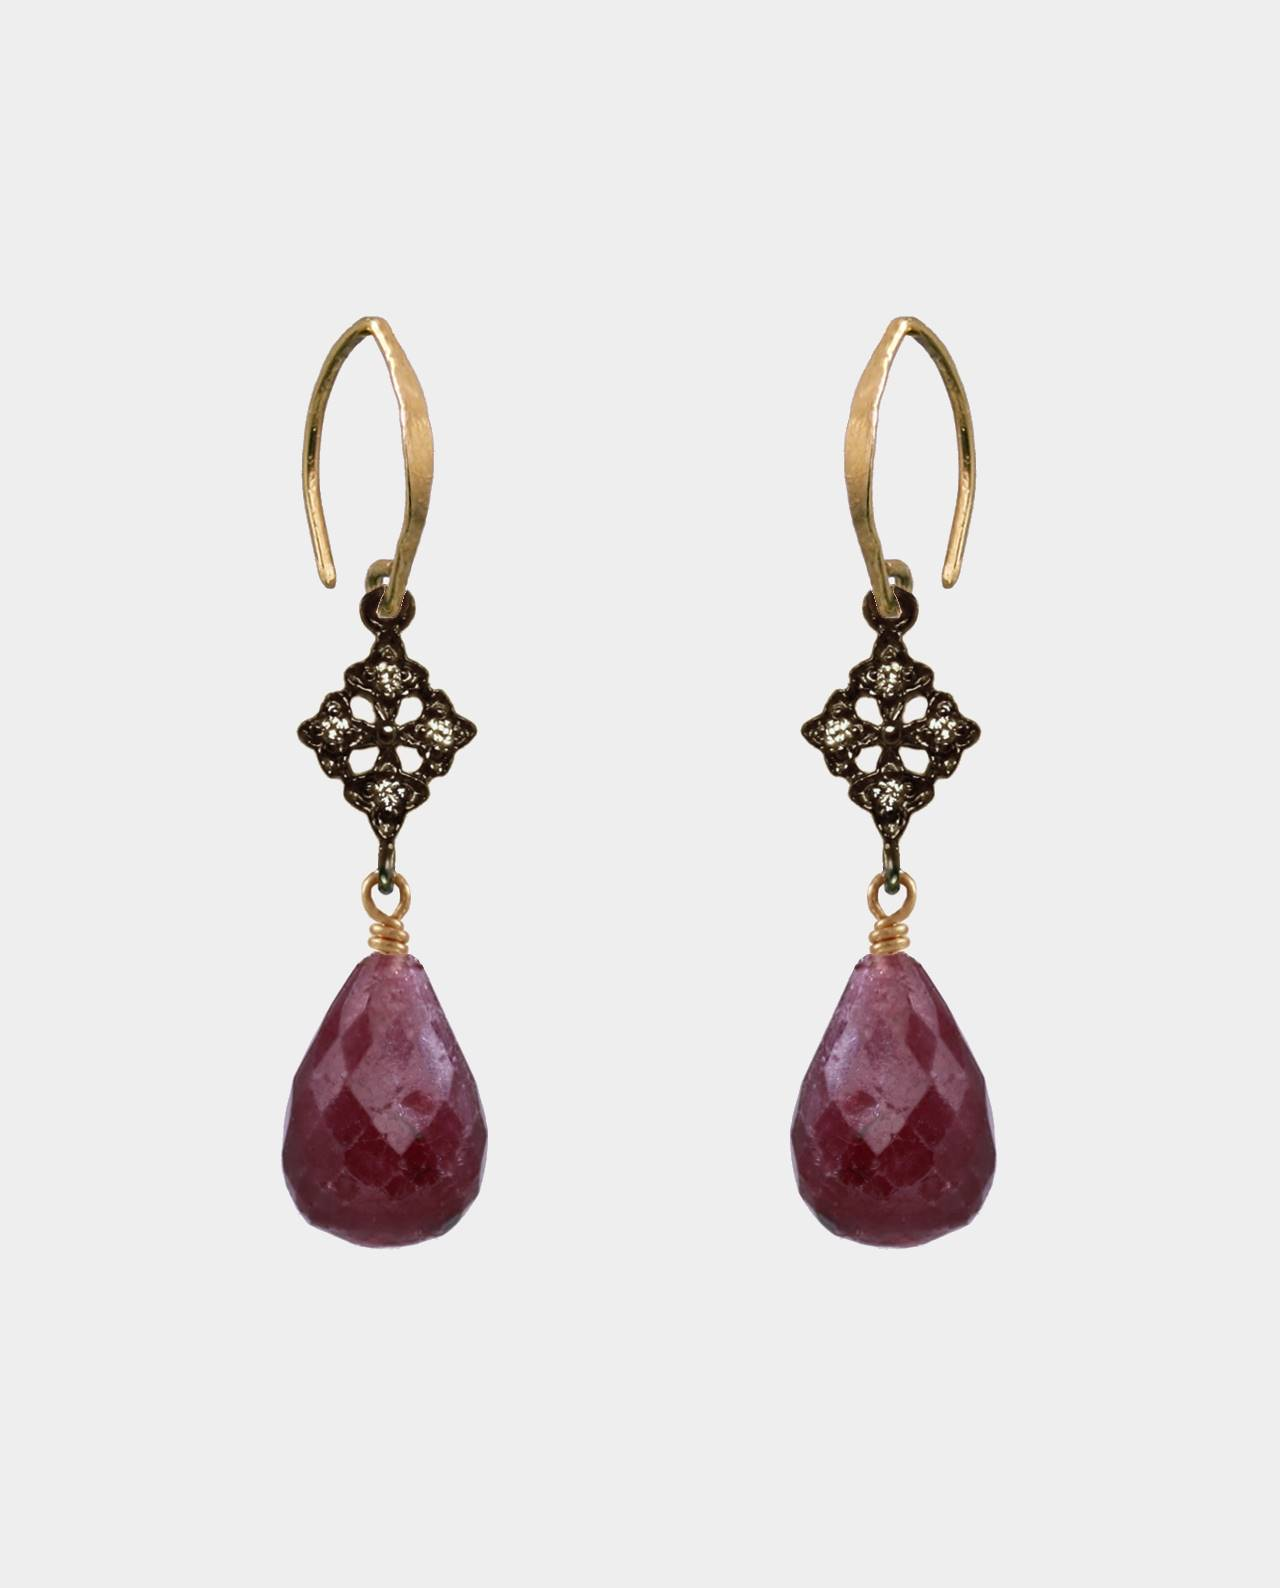 Handmade earrings with large droplet-shaped rubies and zirconia and rustic oval ear hooks in sterling silver plated with 18 carat gold